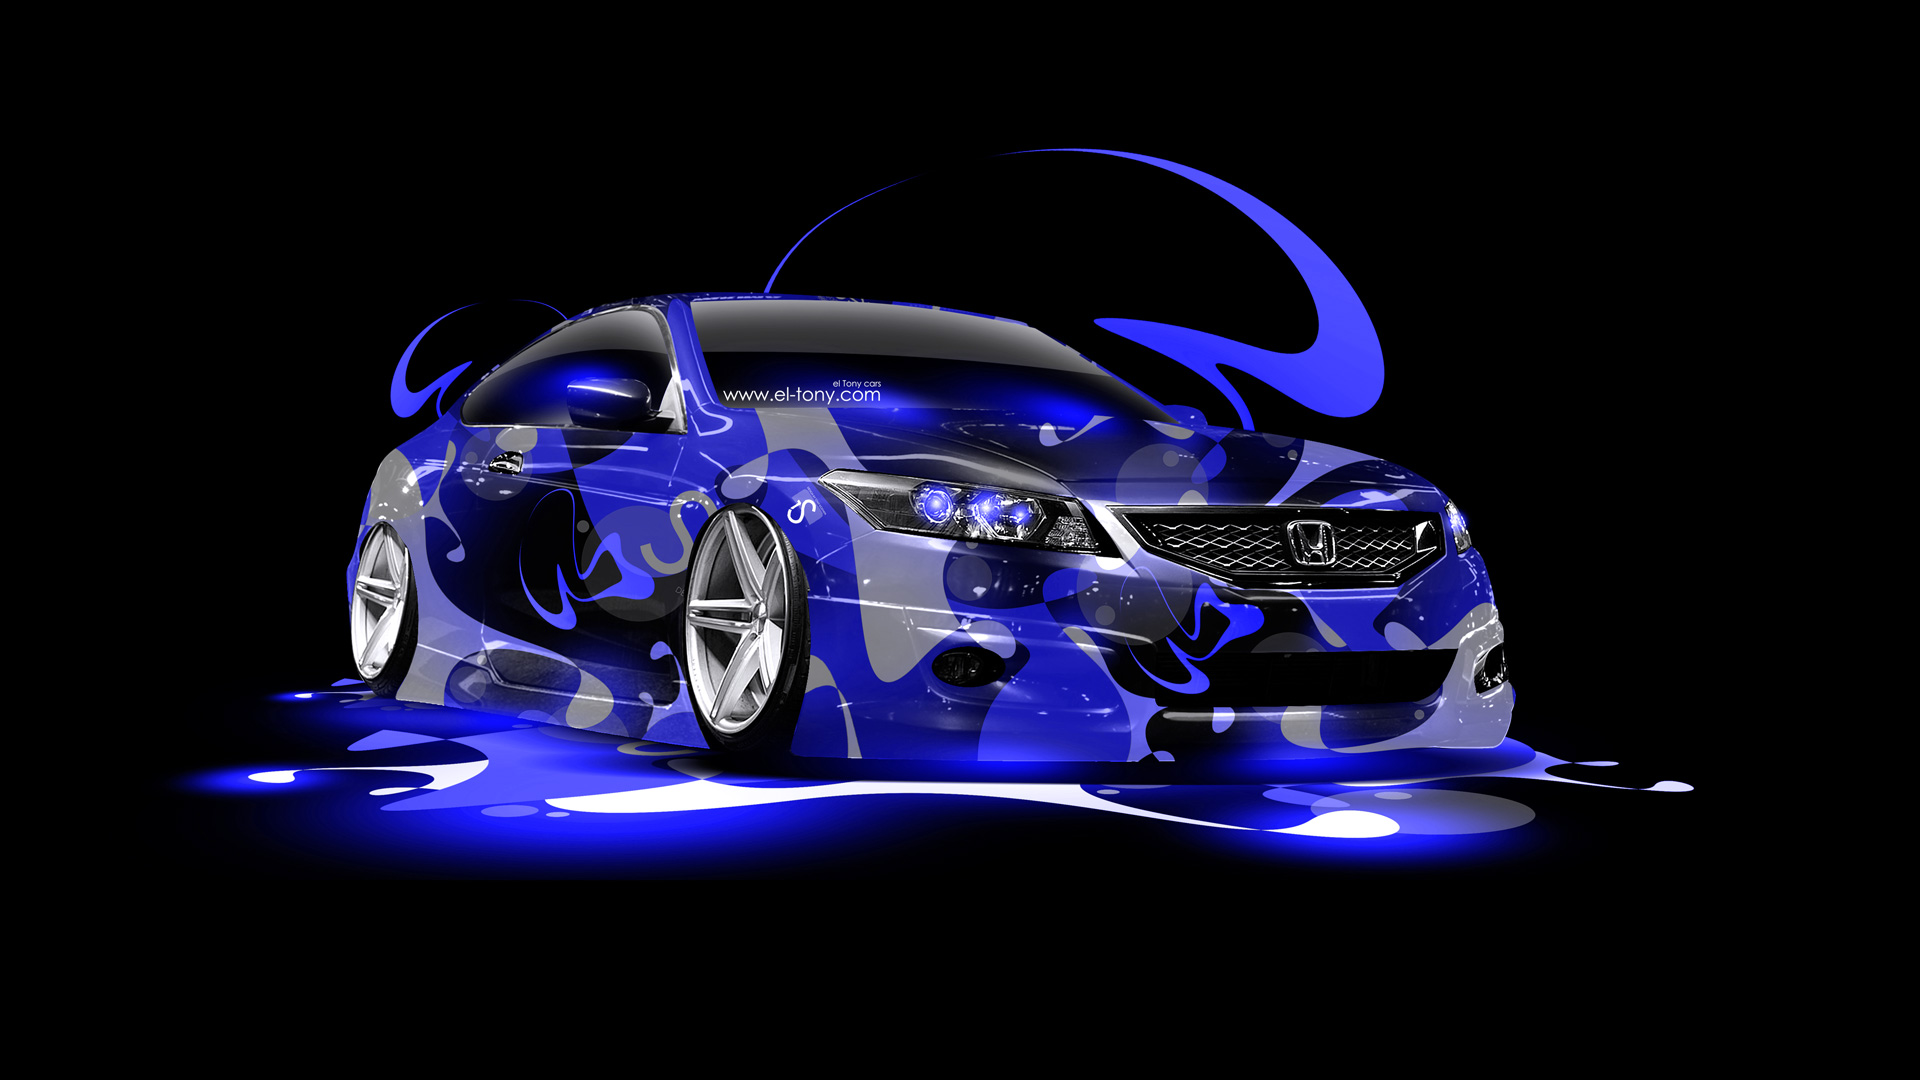 Exceptionnel TS Scorpio Neon Car 2014 · Honda Accord Coupe JDM Super Abstract Car 2014